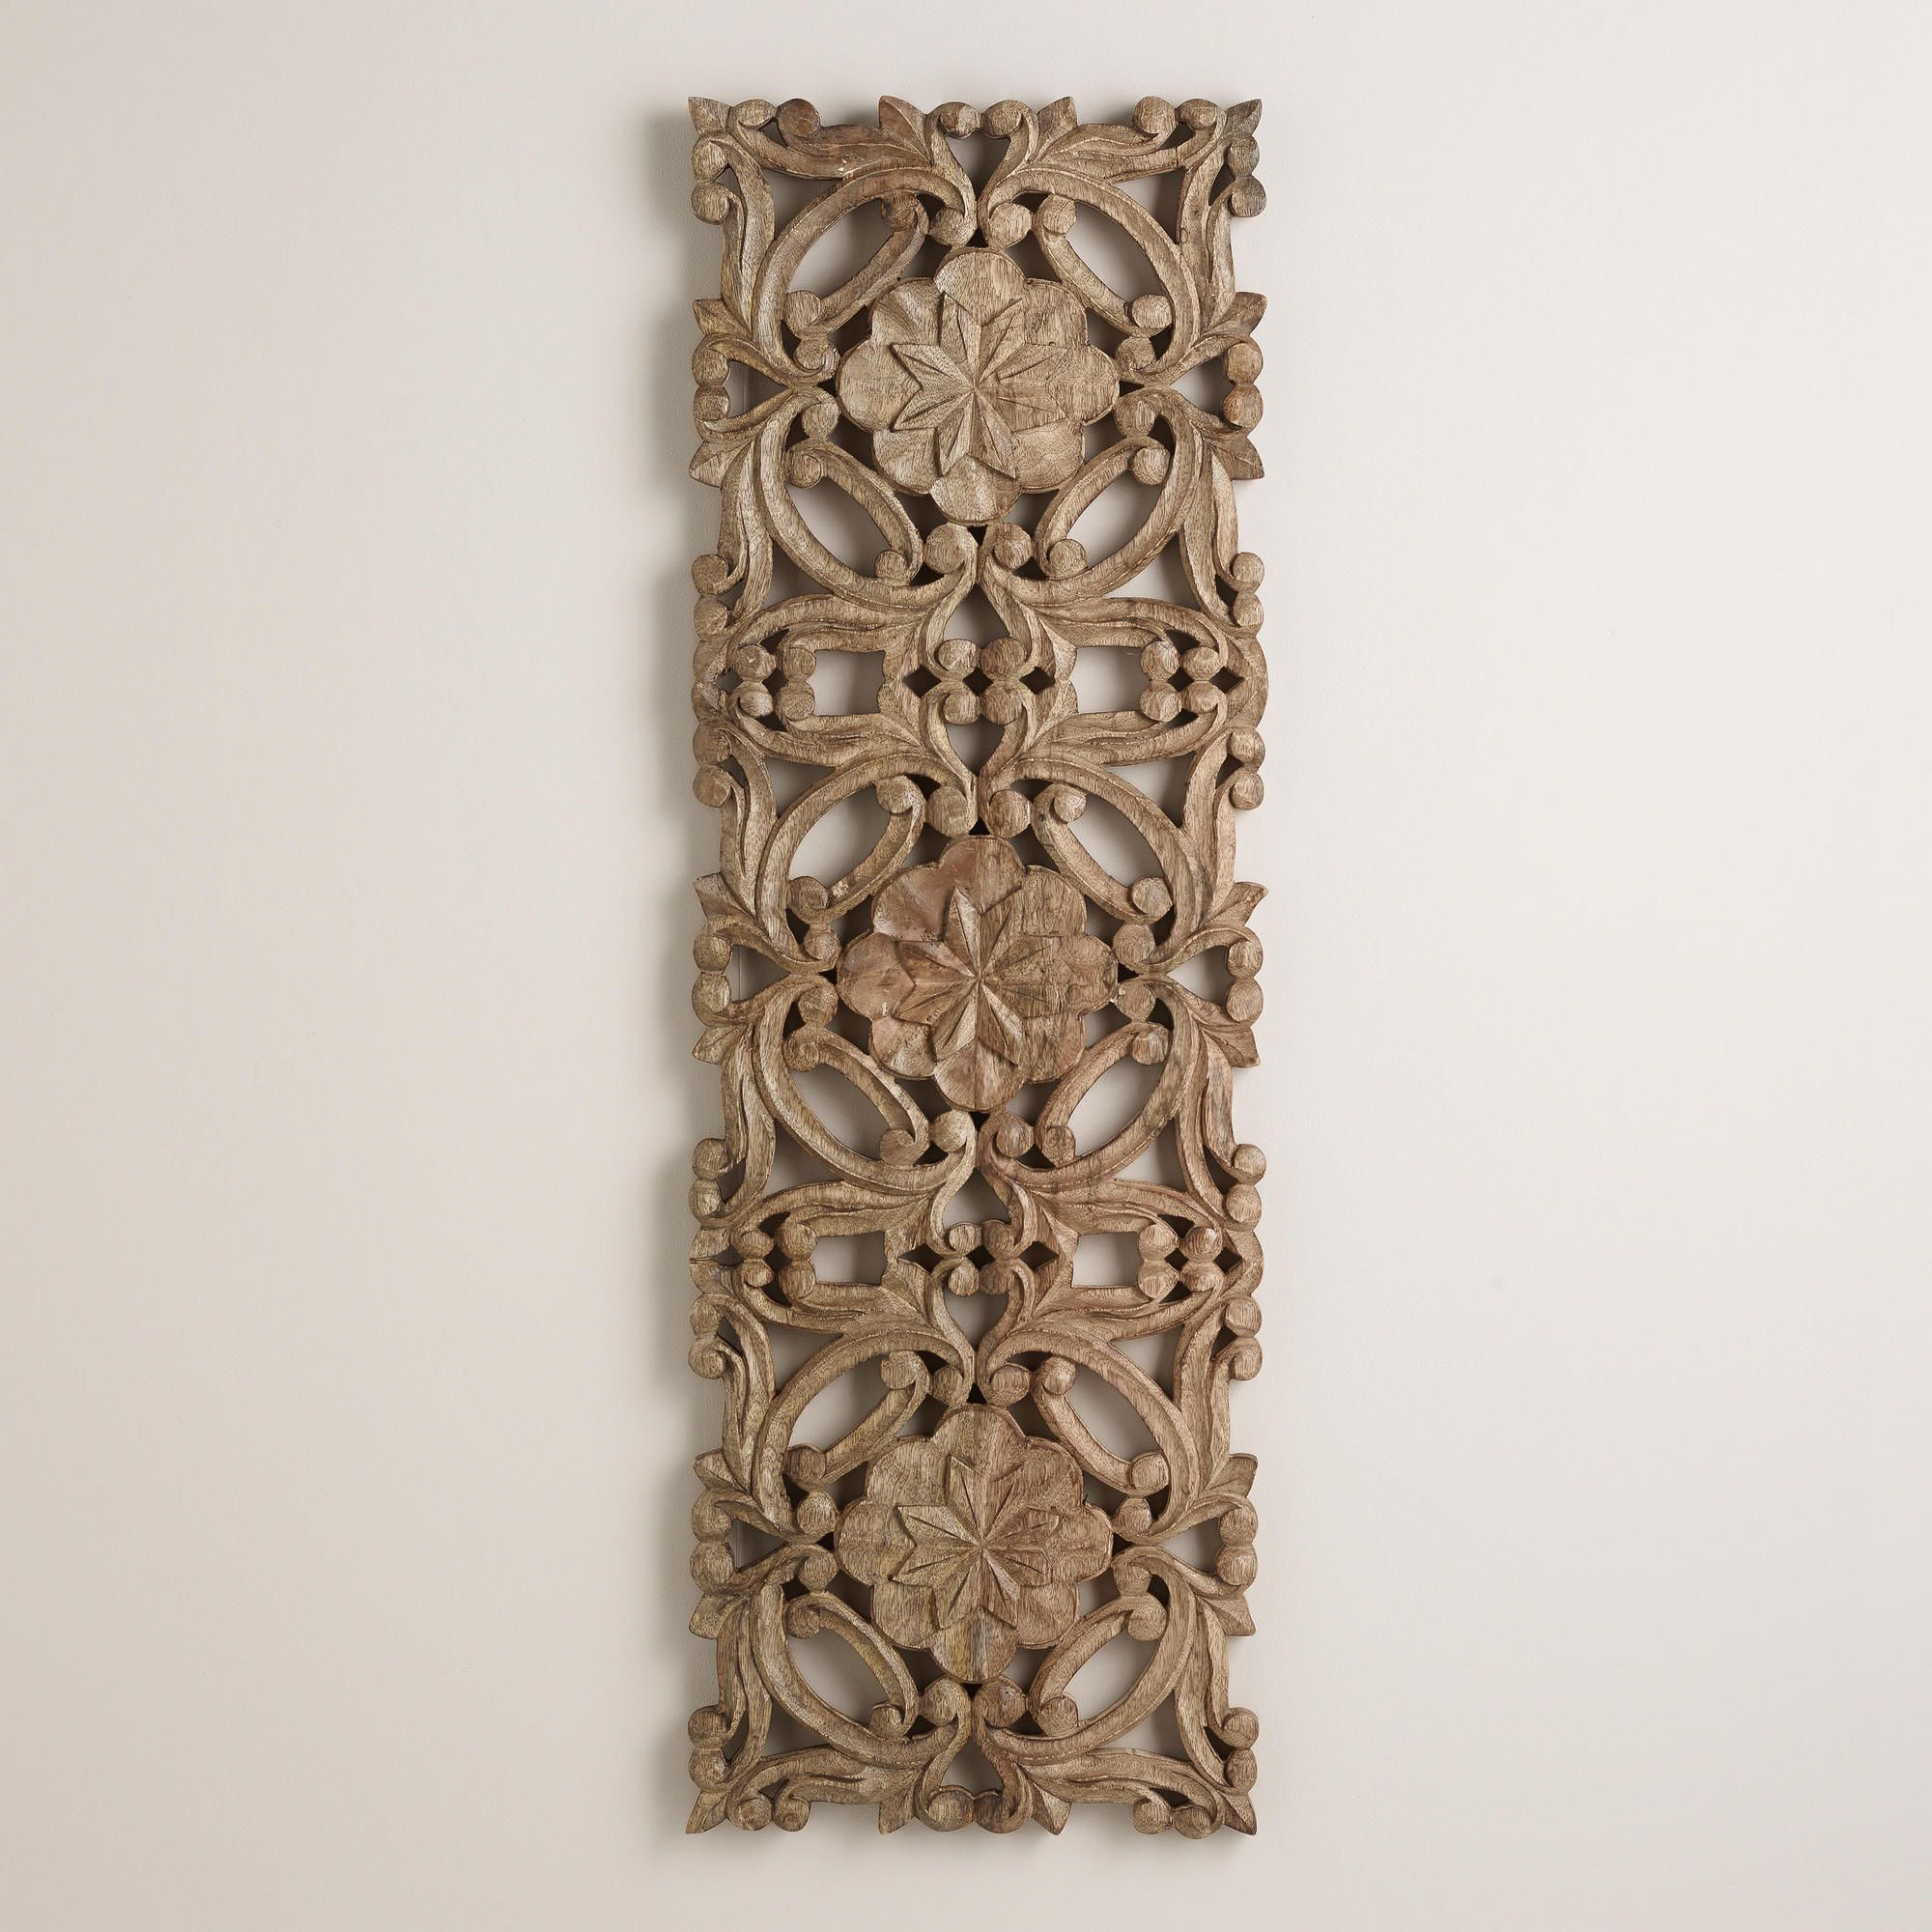 Carved Wood Wall Art Decor Stunning Antiqued Carved Wood Wall Decor  Wood Walls Wall Decor And Woods Inspiration